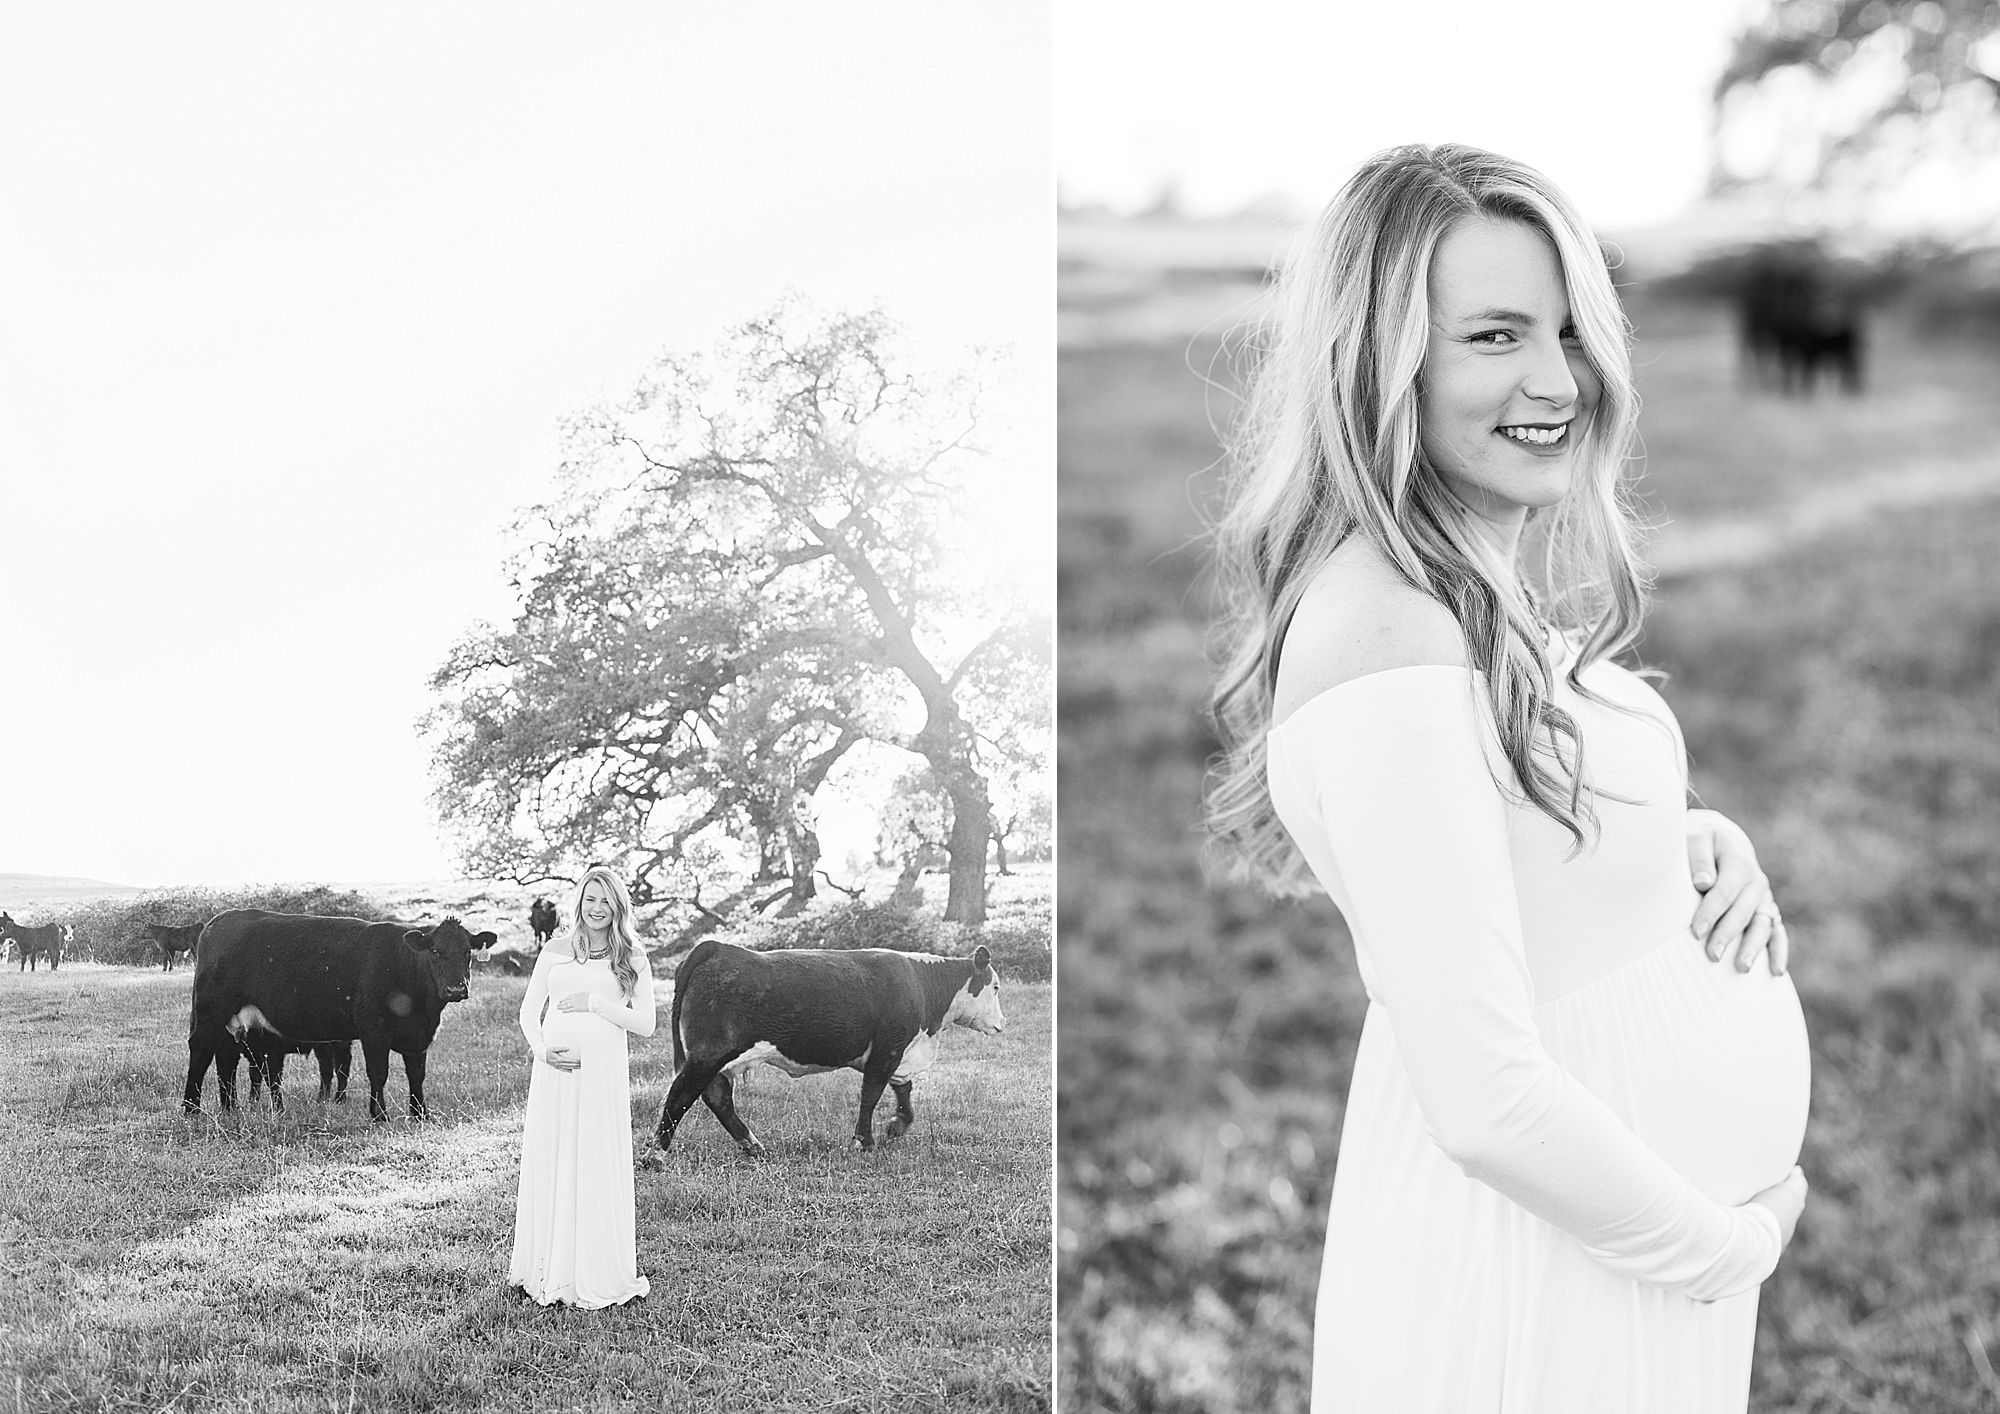 Sheridan Maternity Session - Lexie and Nick - Sacramento Maternity Photos by Ashley Baumgartner - Farmland, 4H Maternity with Cows_0018.jpg